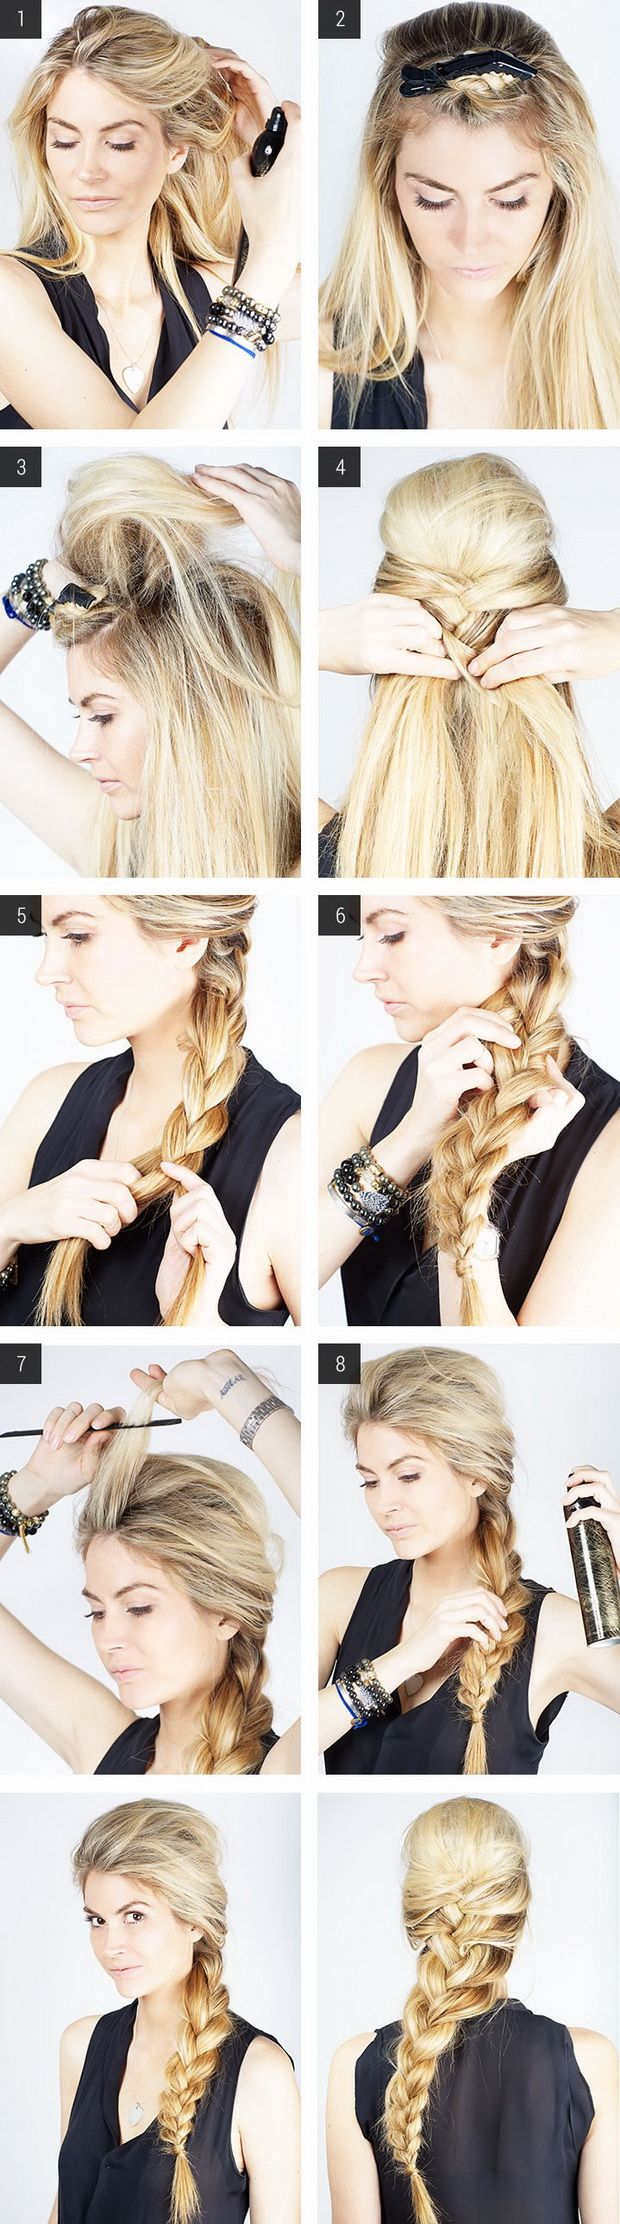 For when my hair is long...hopefully someday...Messy French braid with poof